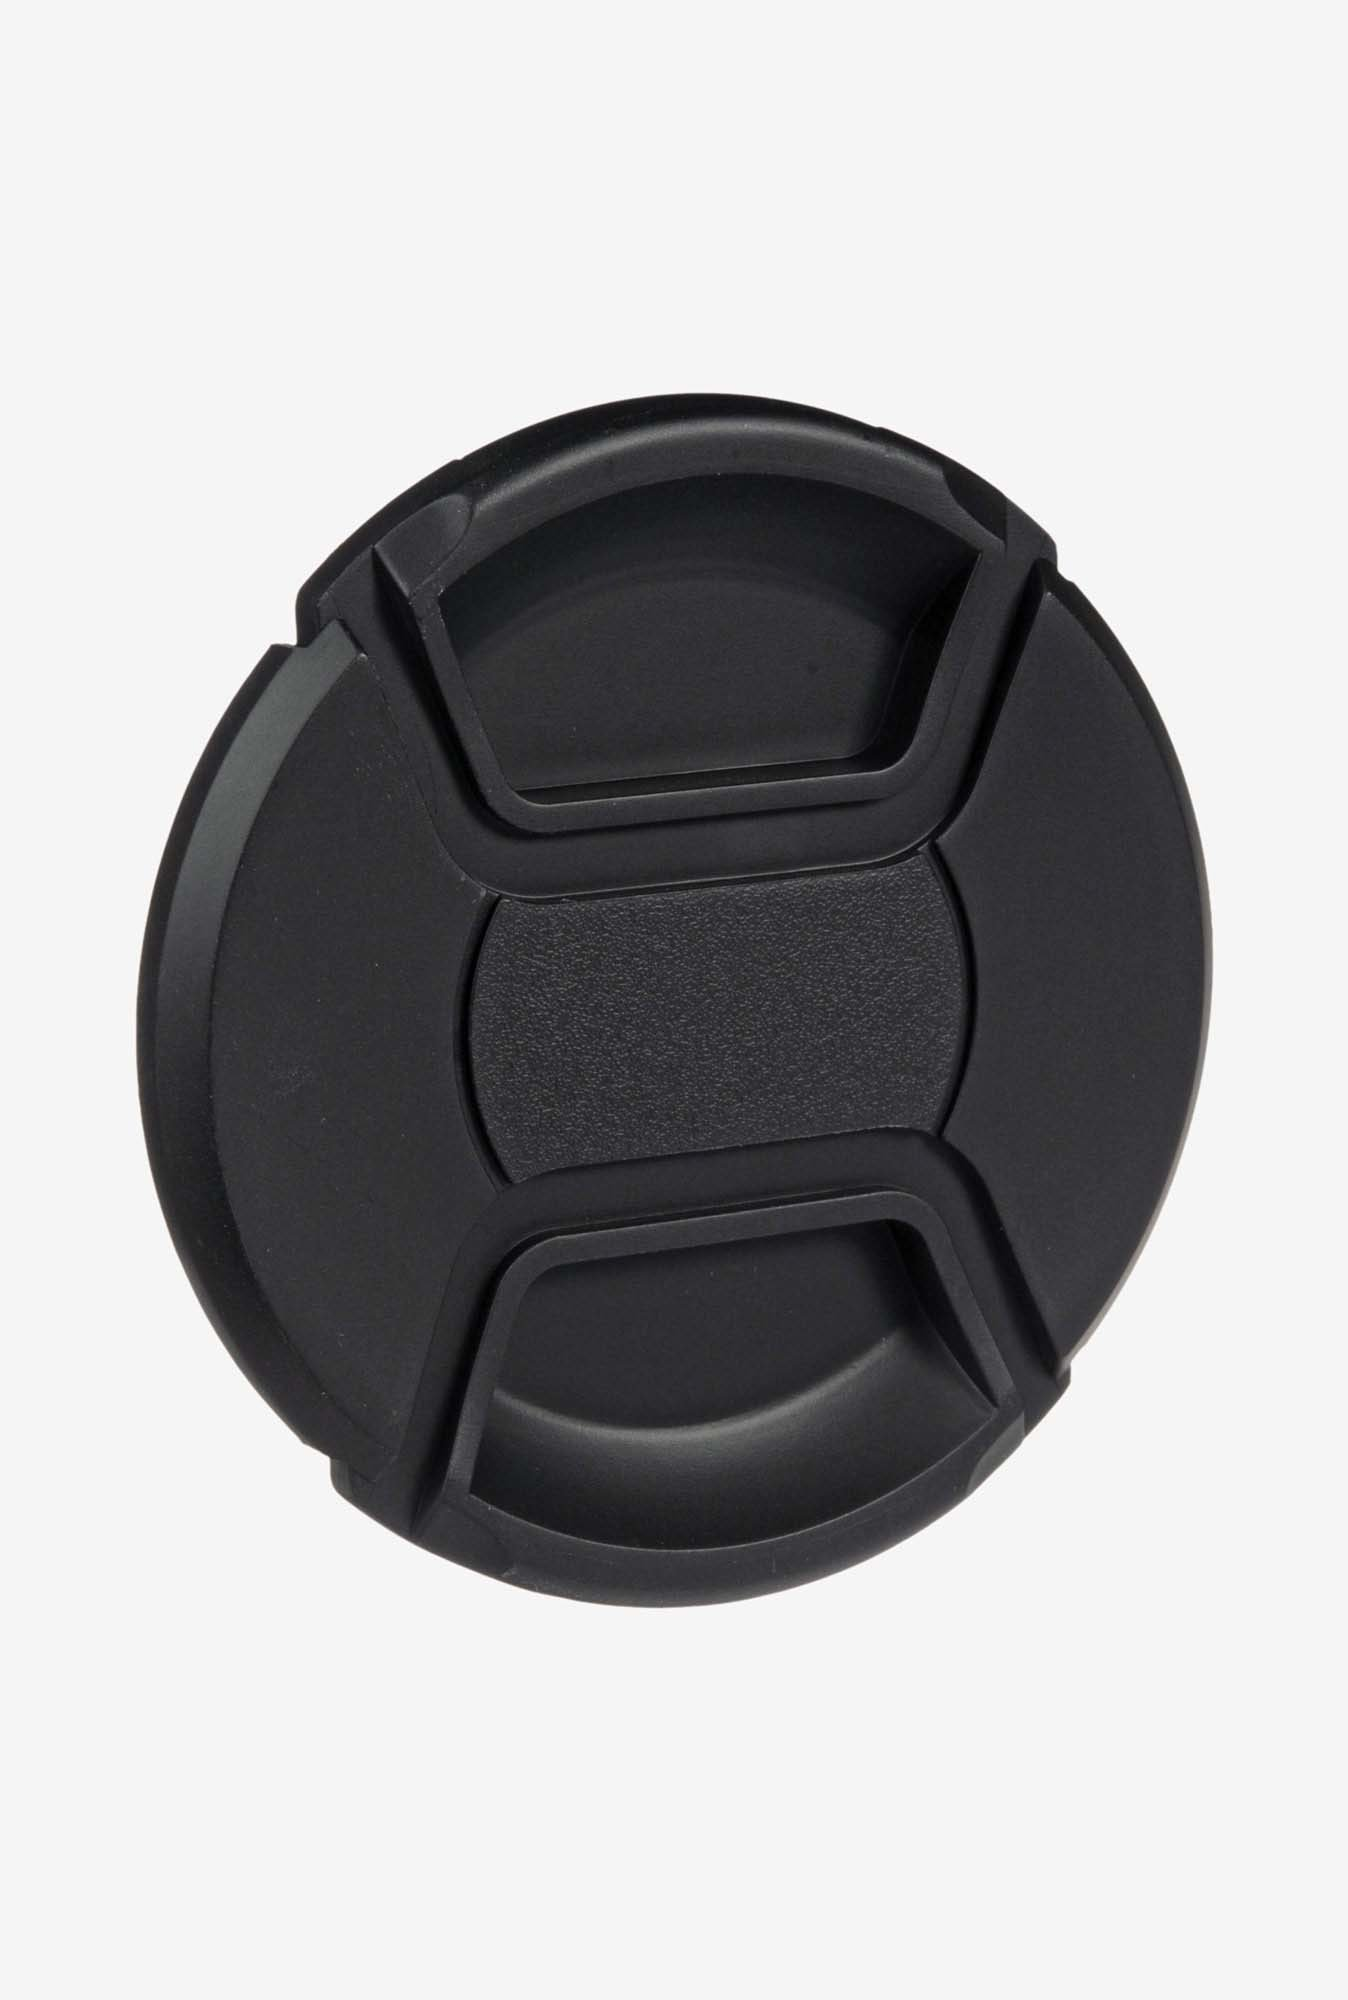 Sensei LC77 77mm Centre Pinch Snap-On Lens Cap (Black)